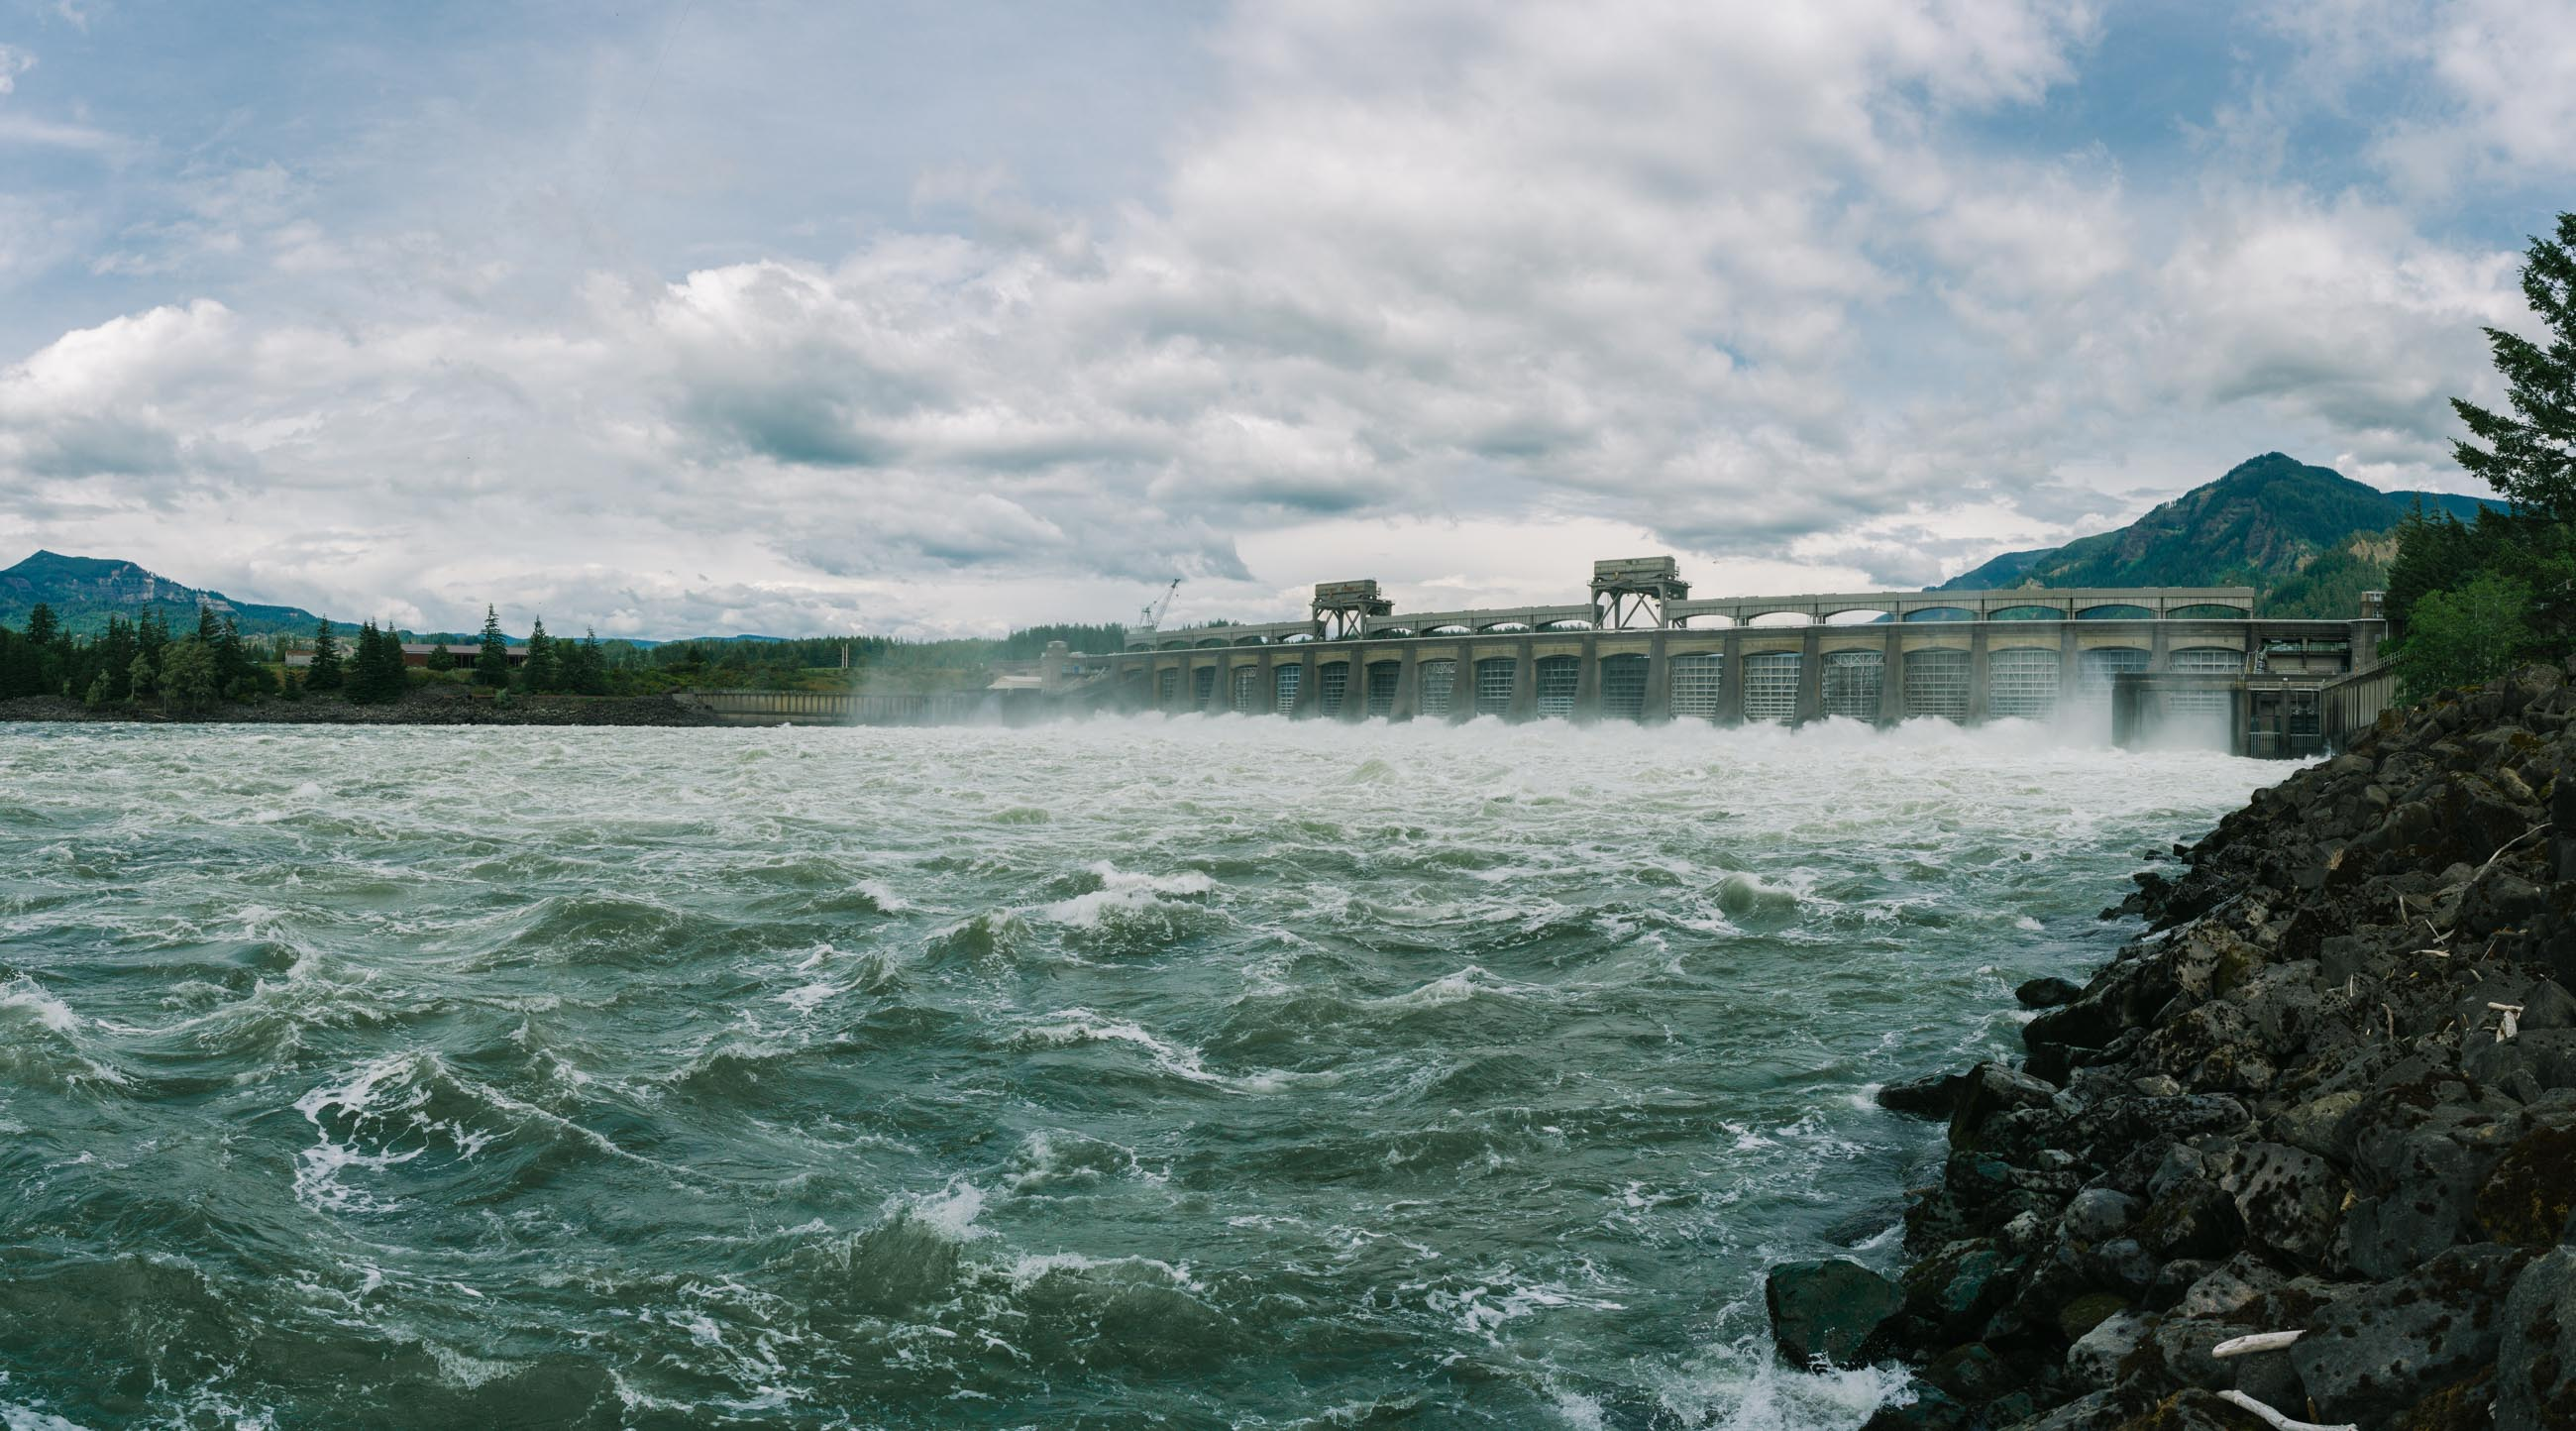 Bonneville Dam on the Columbia River